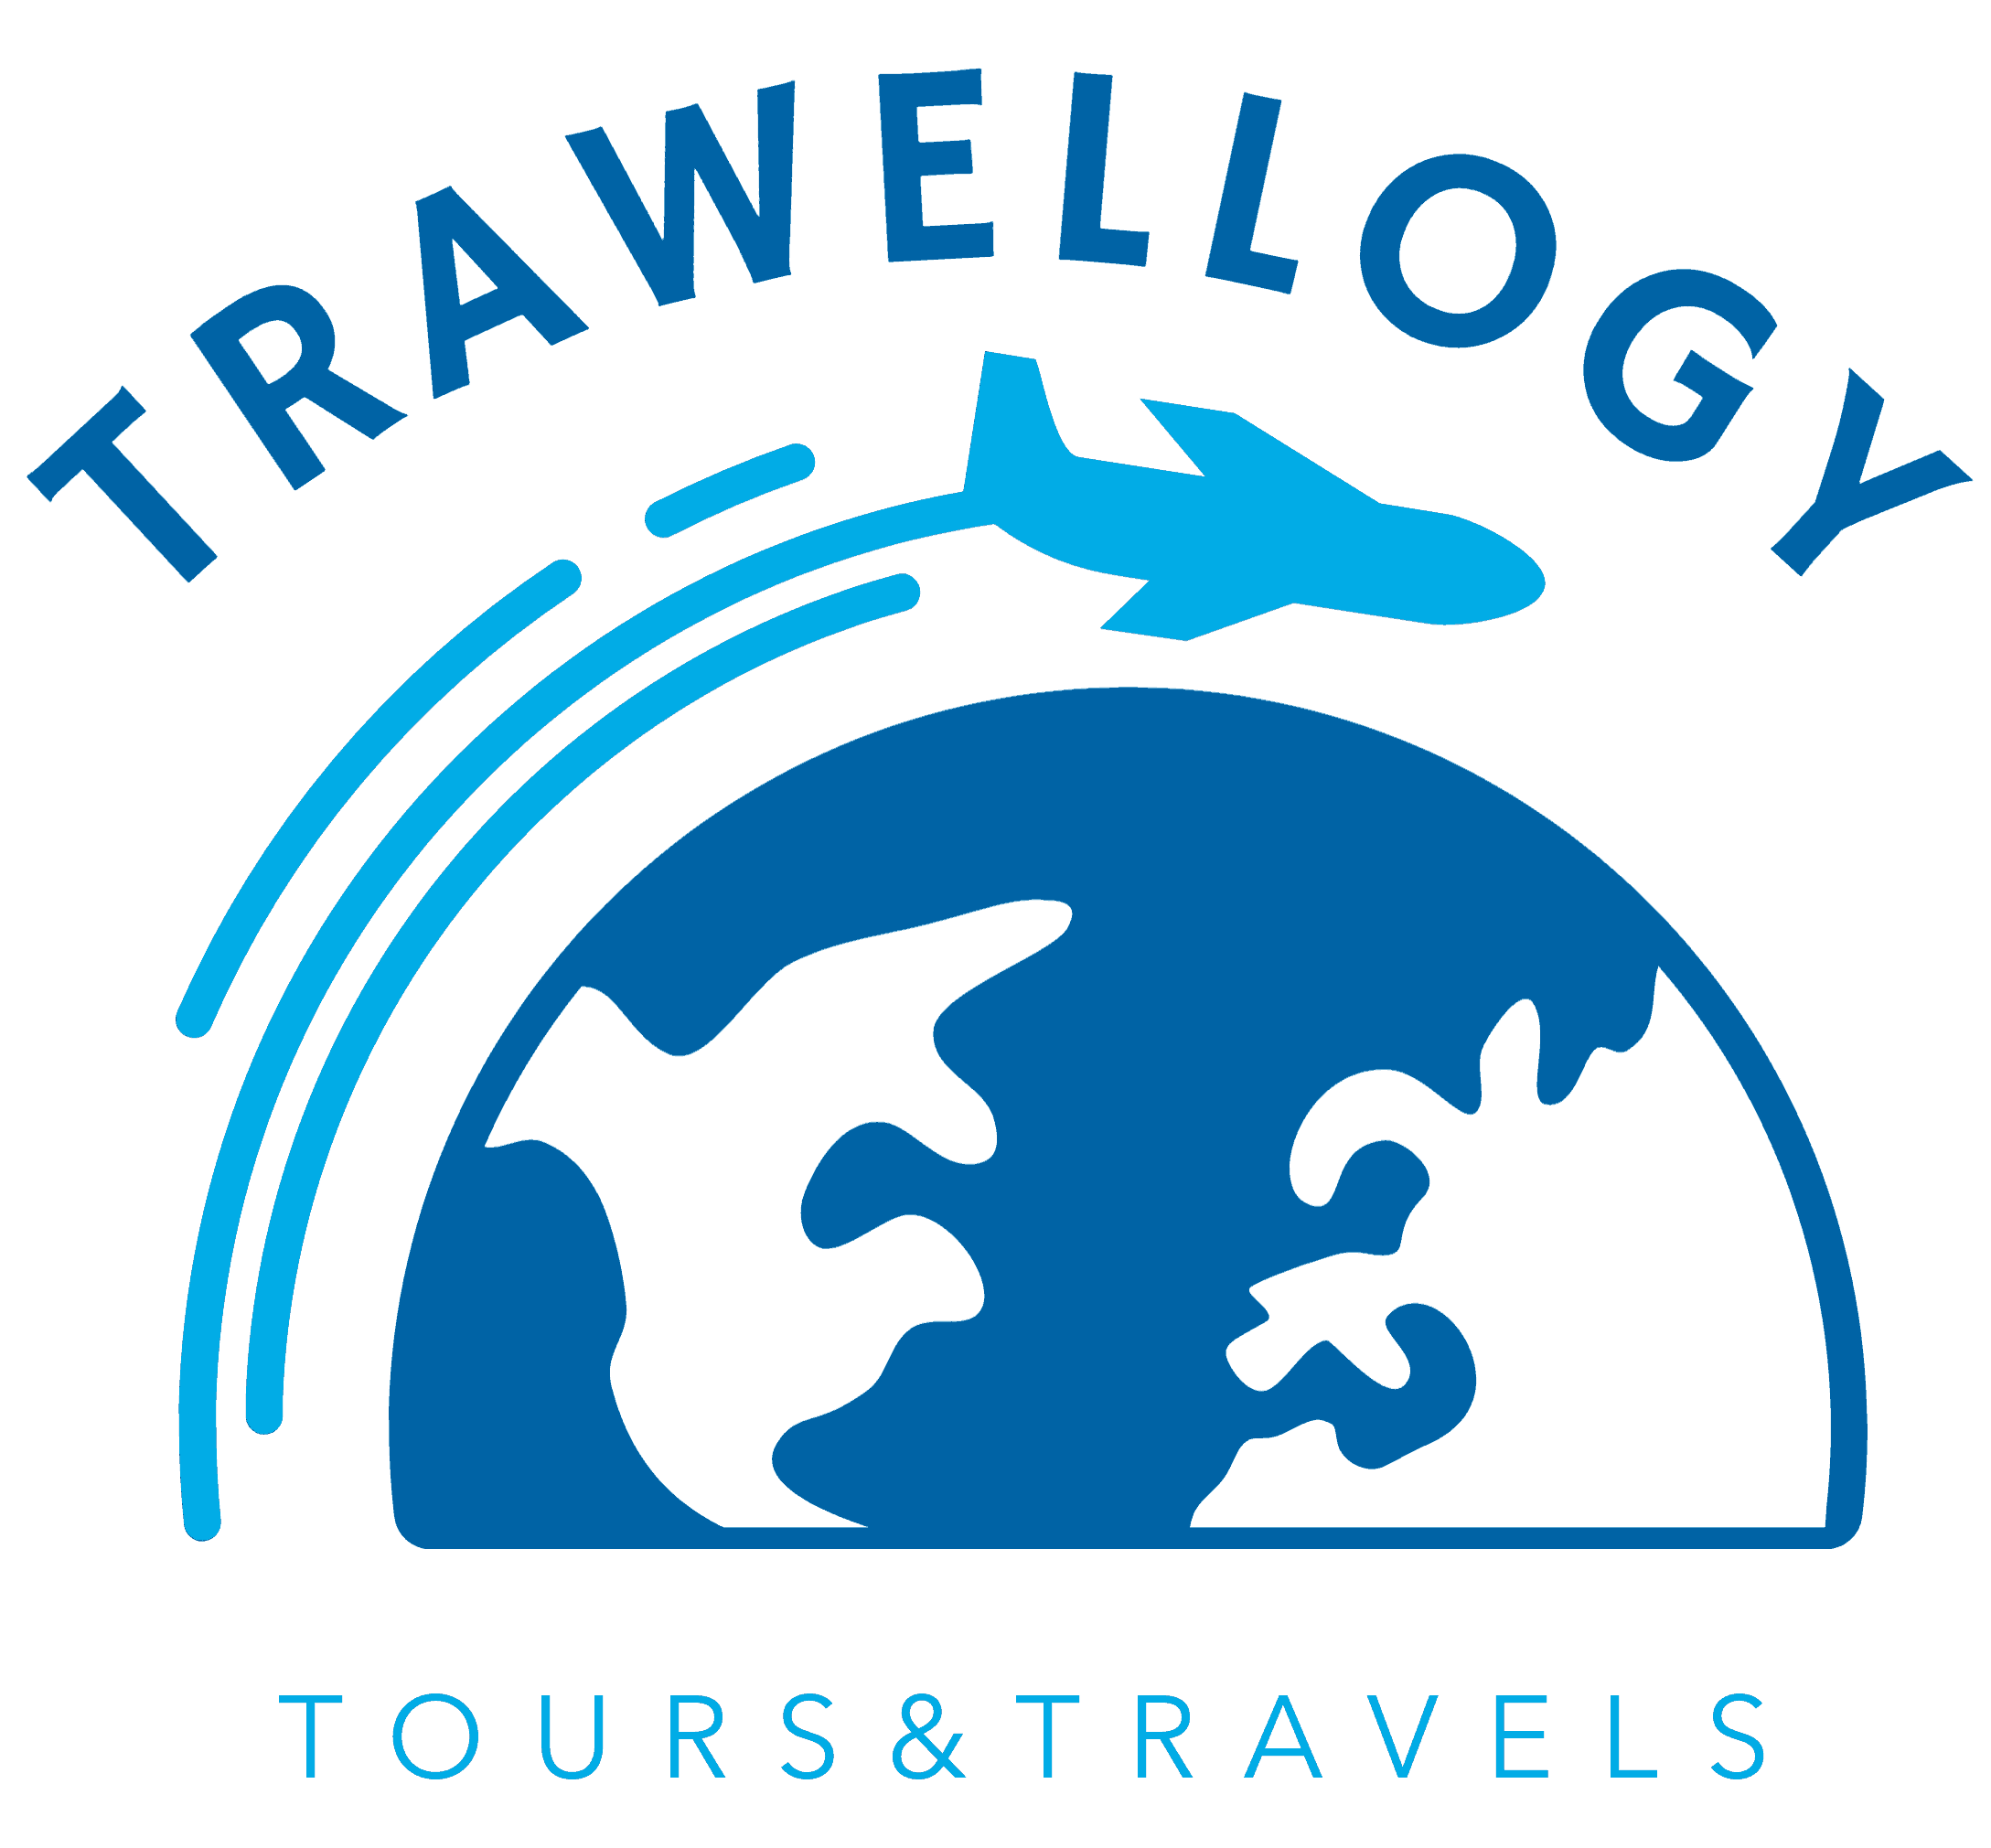 trawellogy - Best Hotel, Flights & Rental Car Information